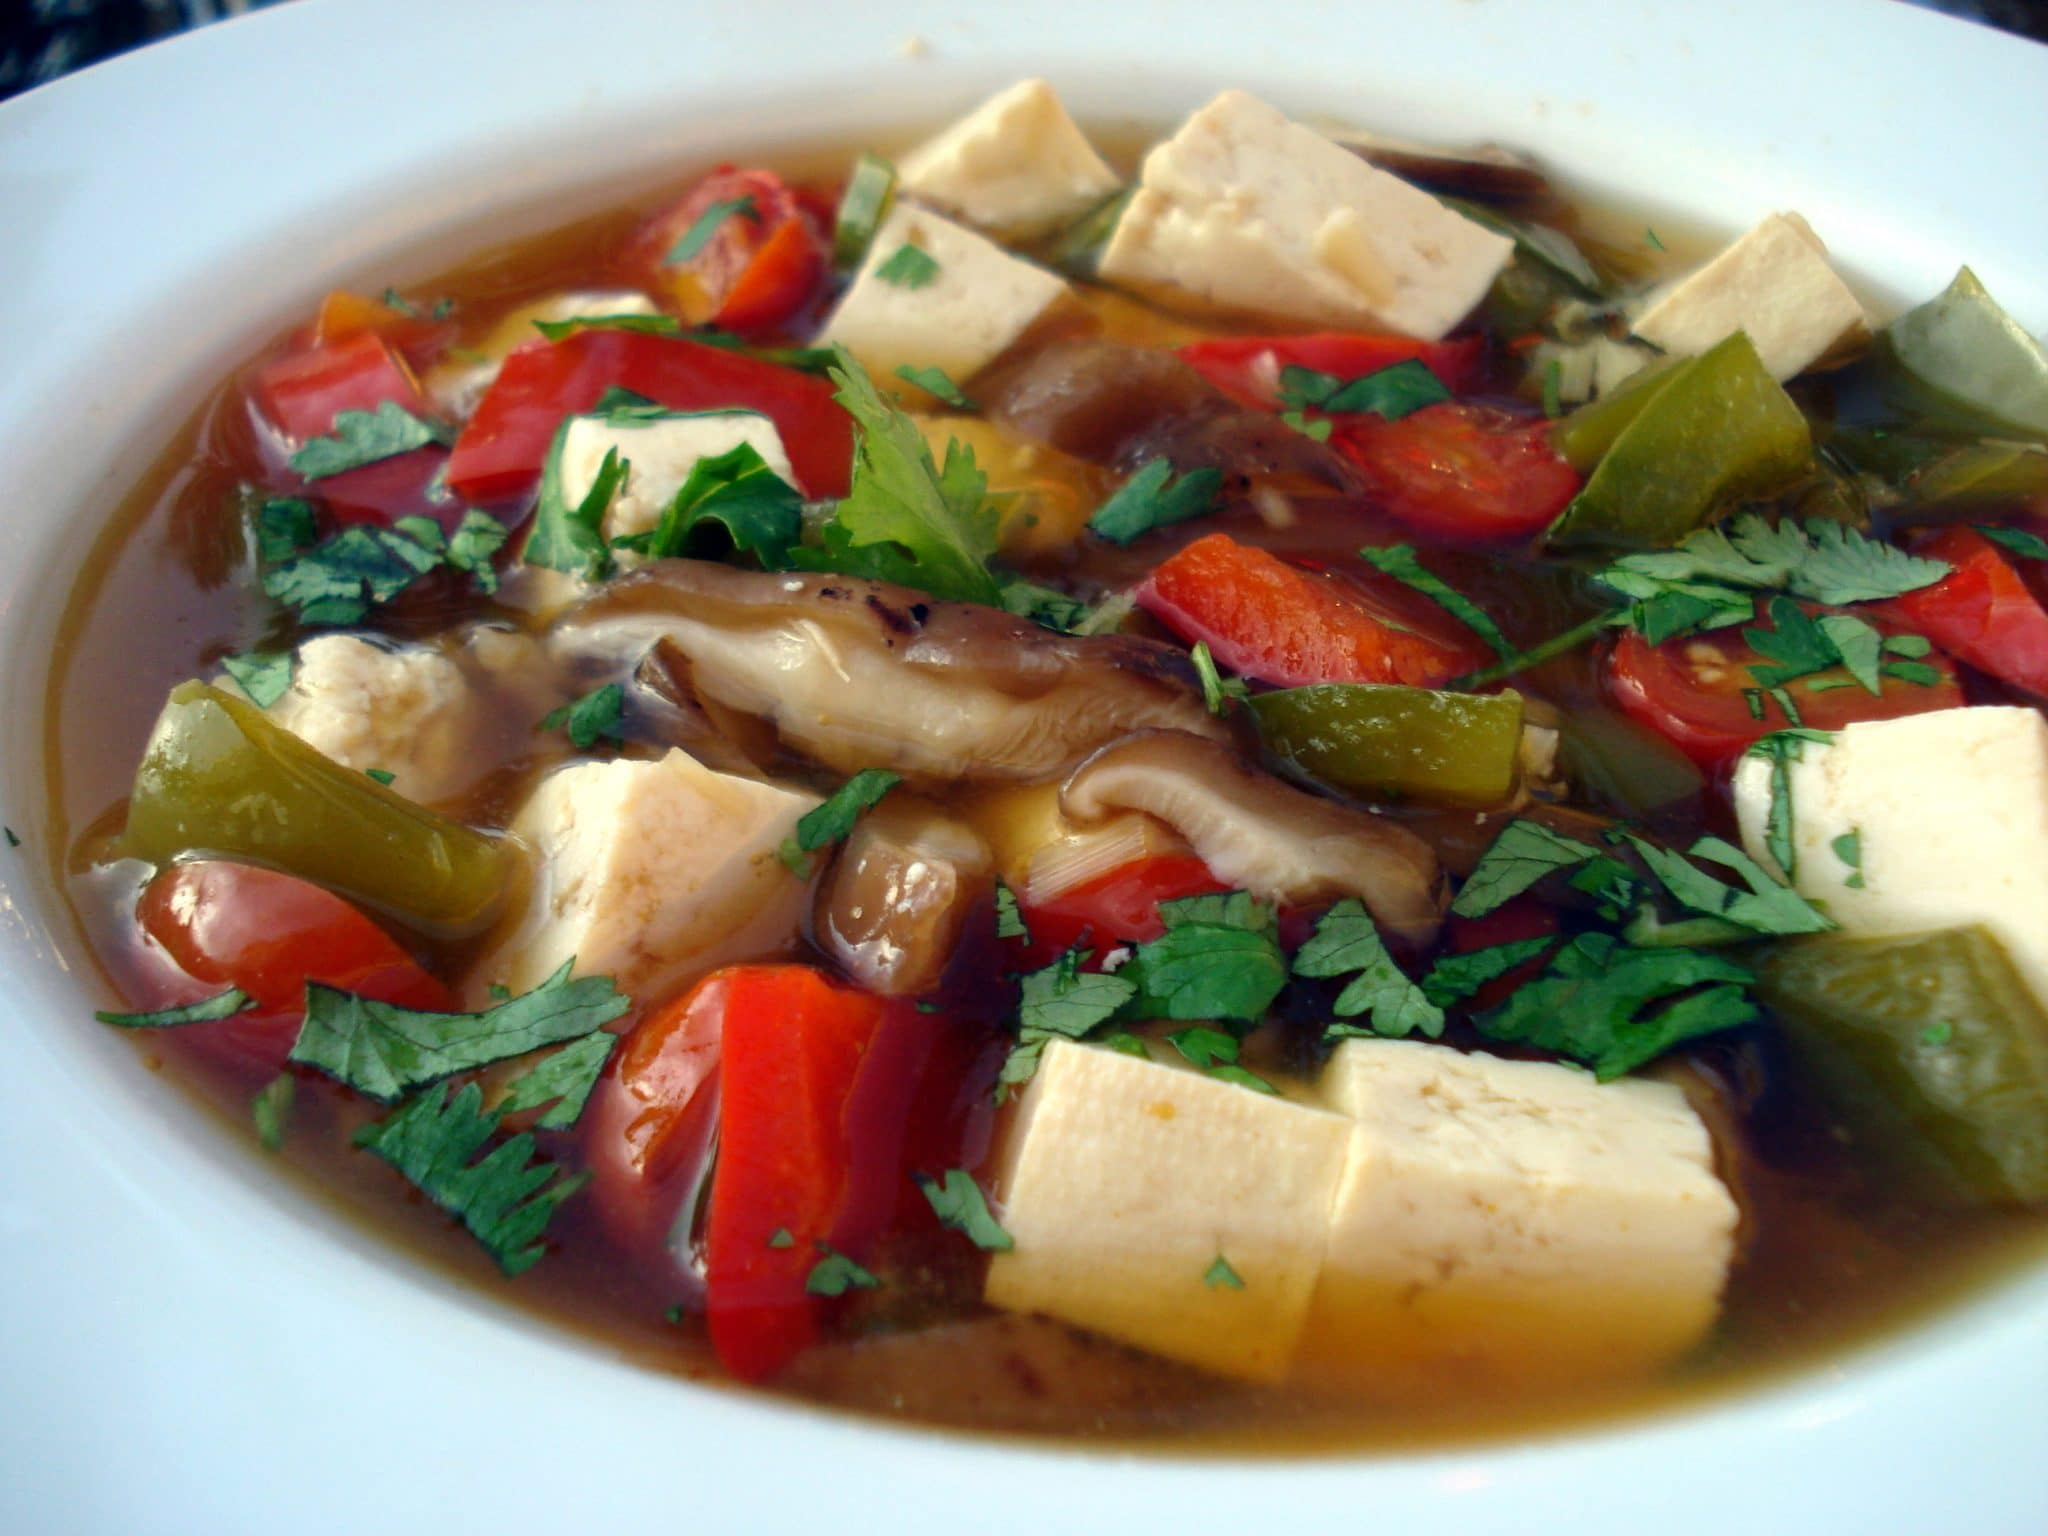 Thai lemongrass soup with tofu and mushrooms